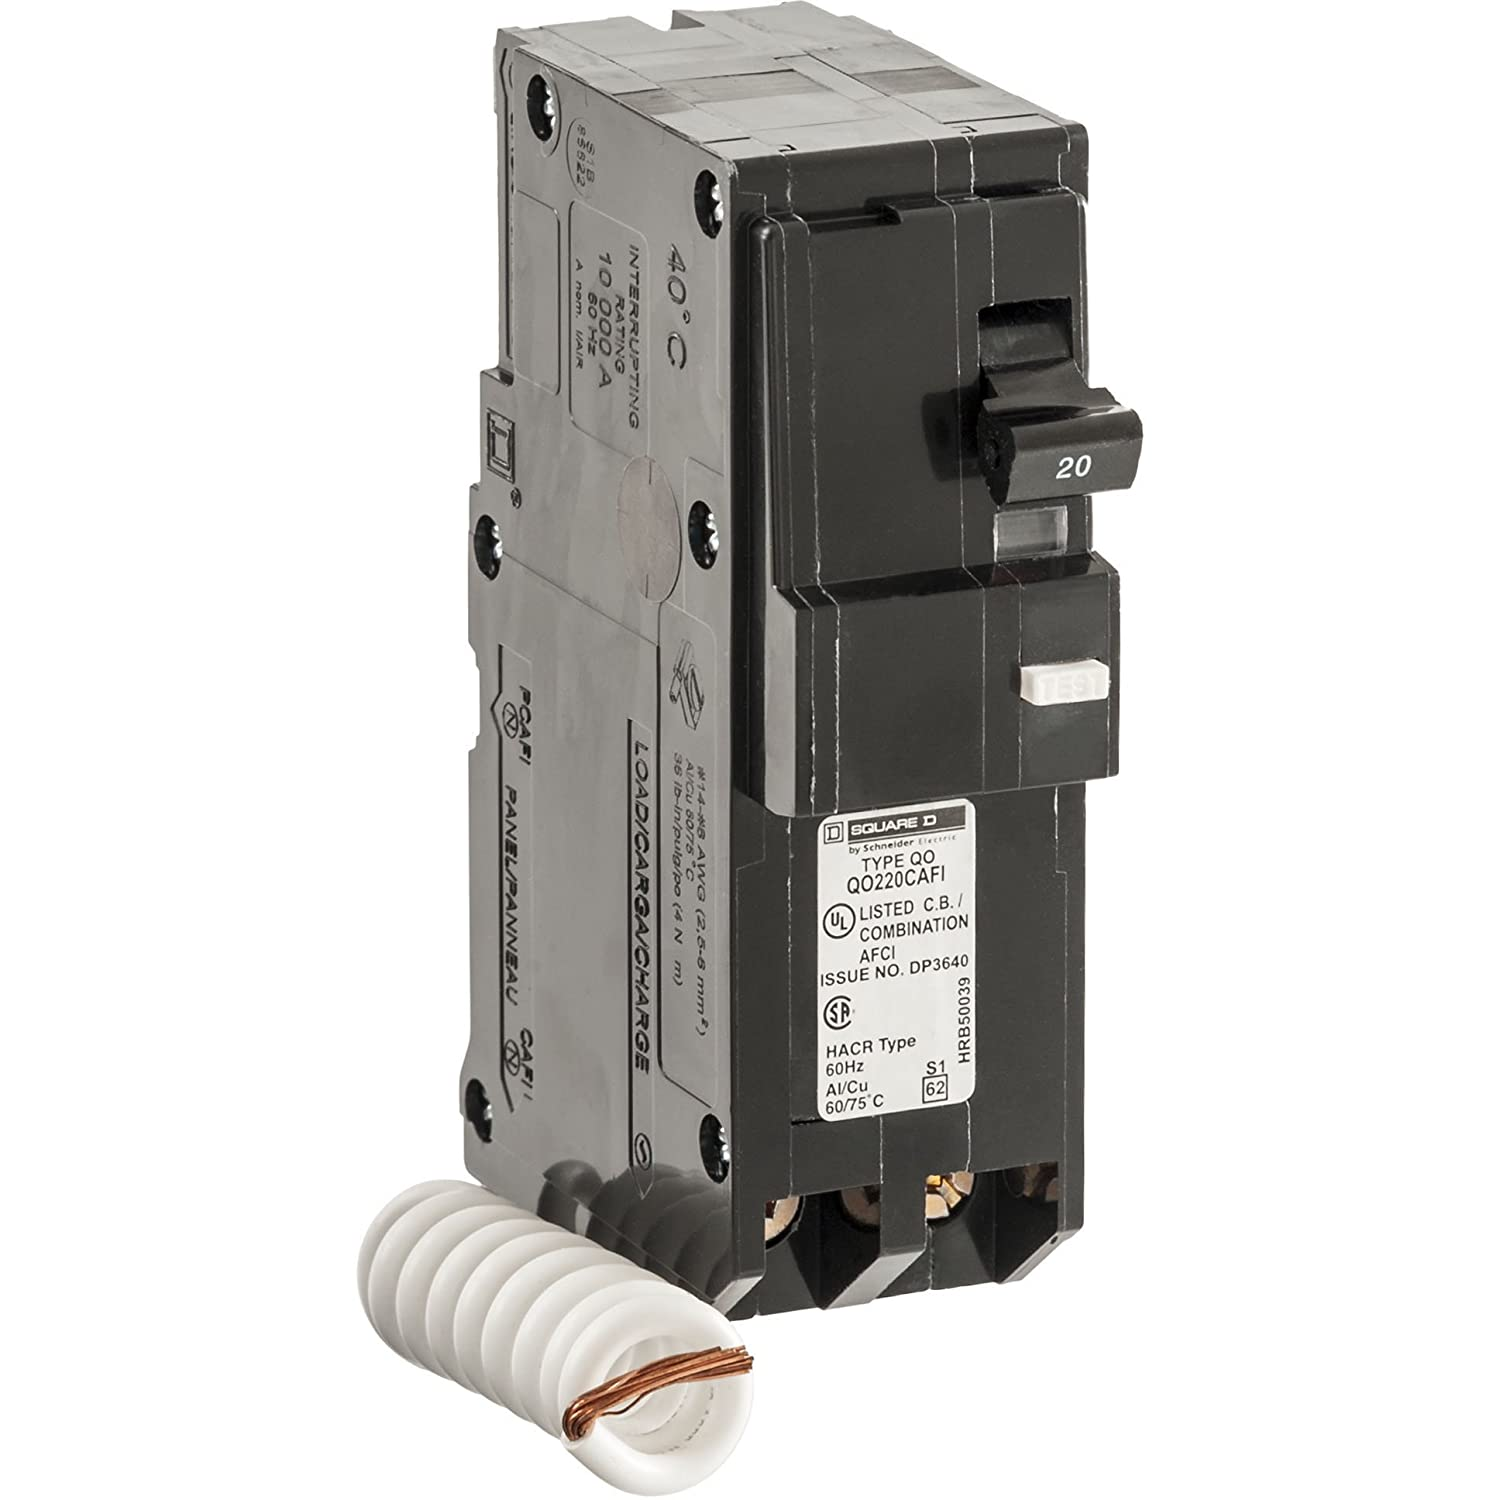 718oAYokQ4L._SL1500_ square d by schneider electric qo 20 amp 3 5 in two pole cafci 240 Volt Breaker Wiring Diagram at soozxer.org